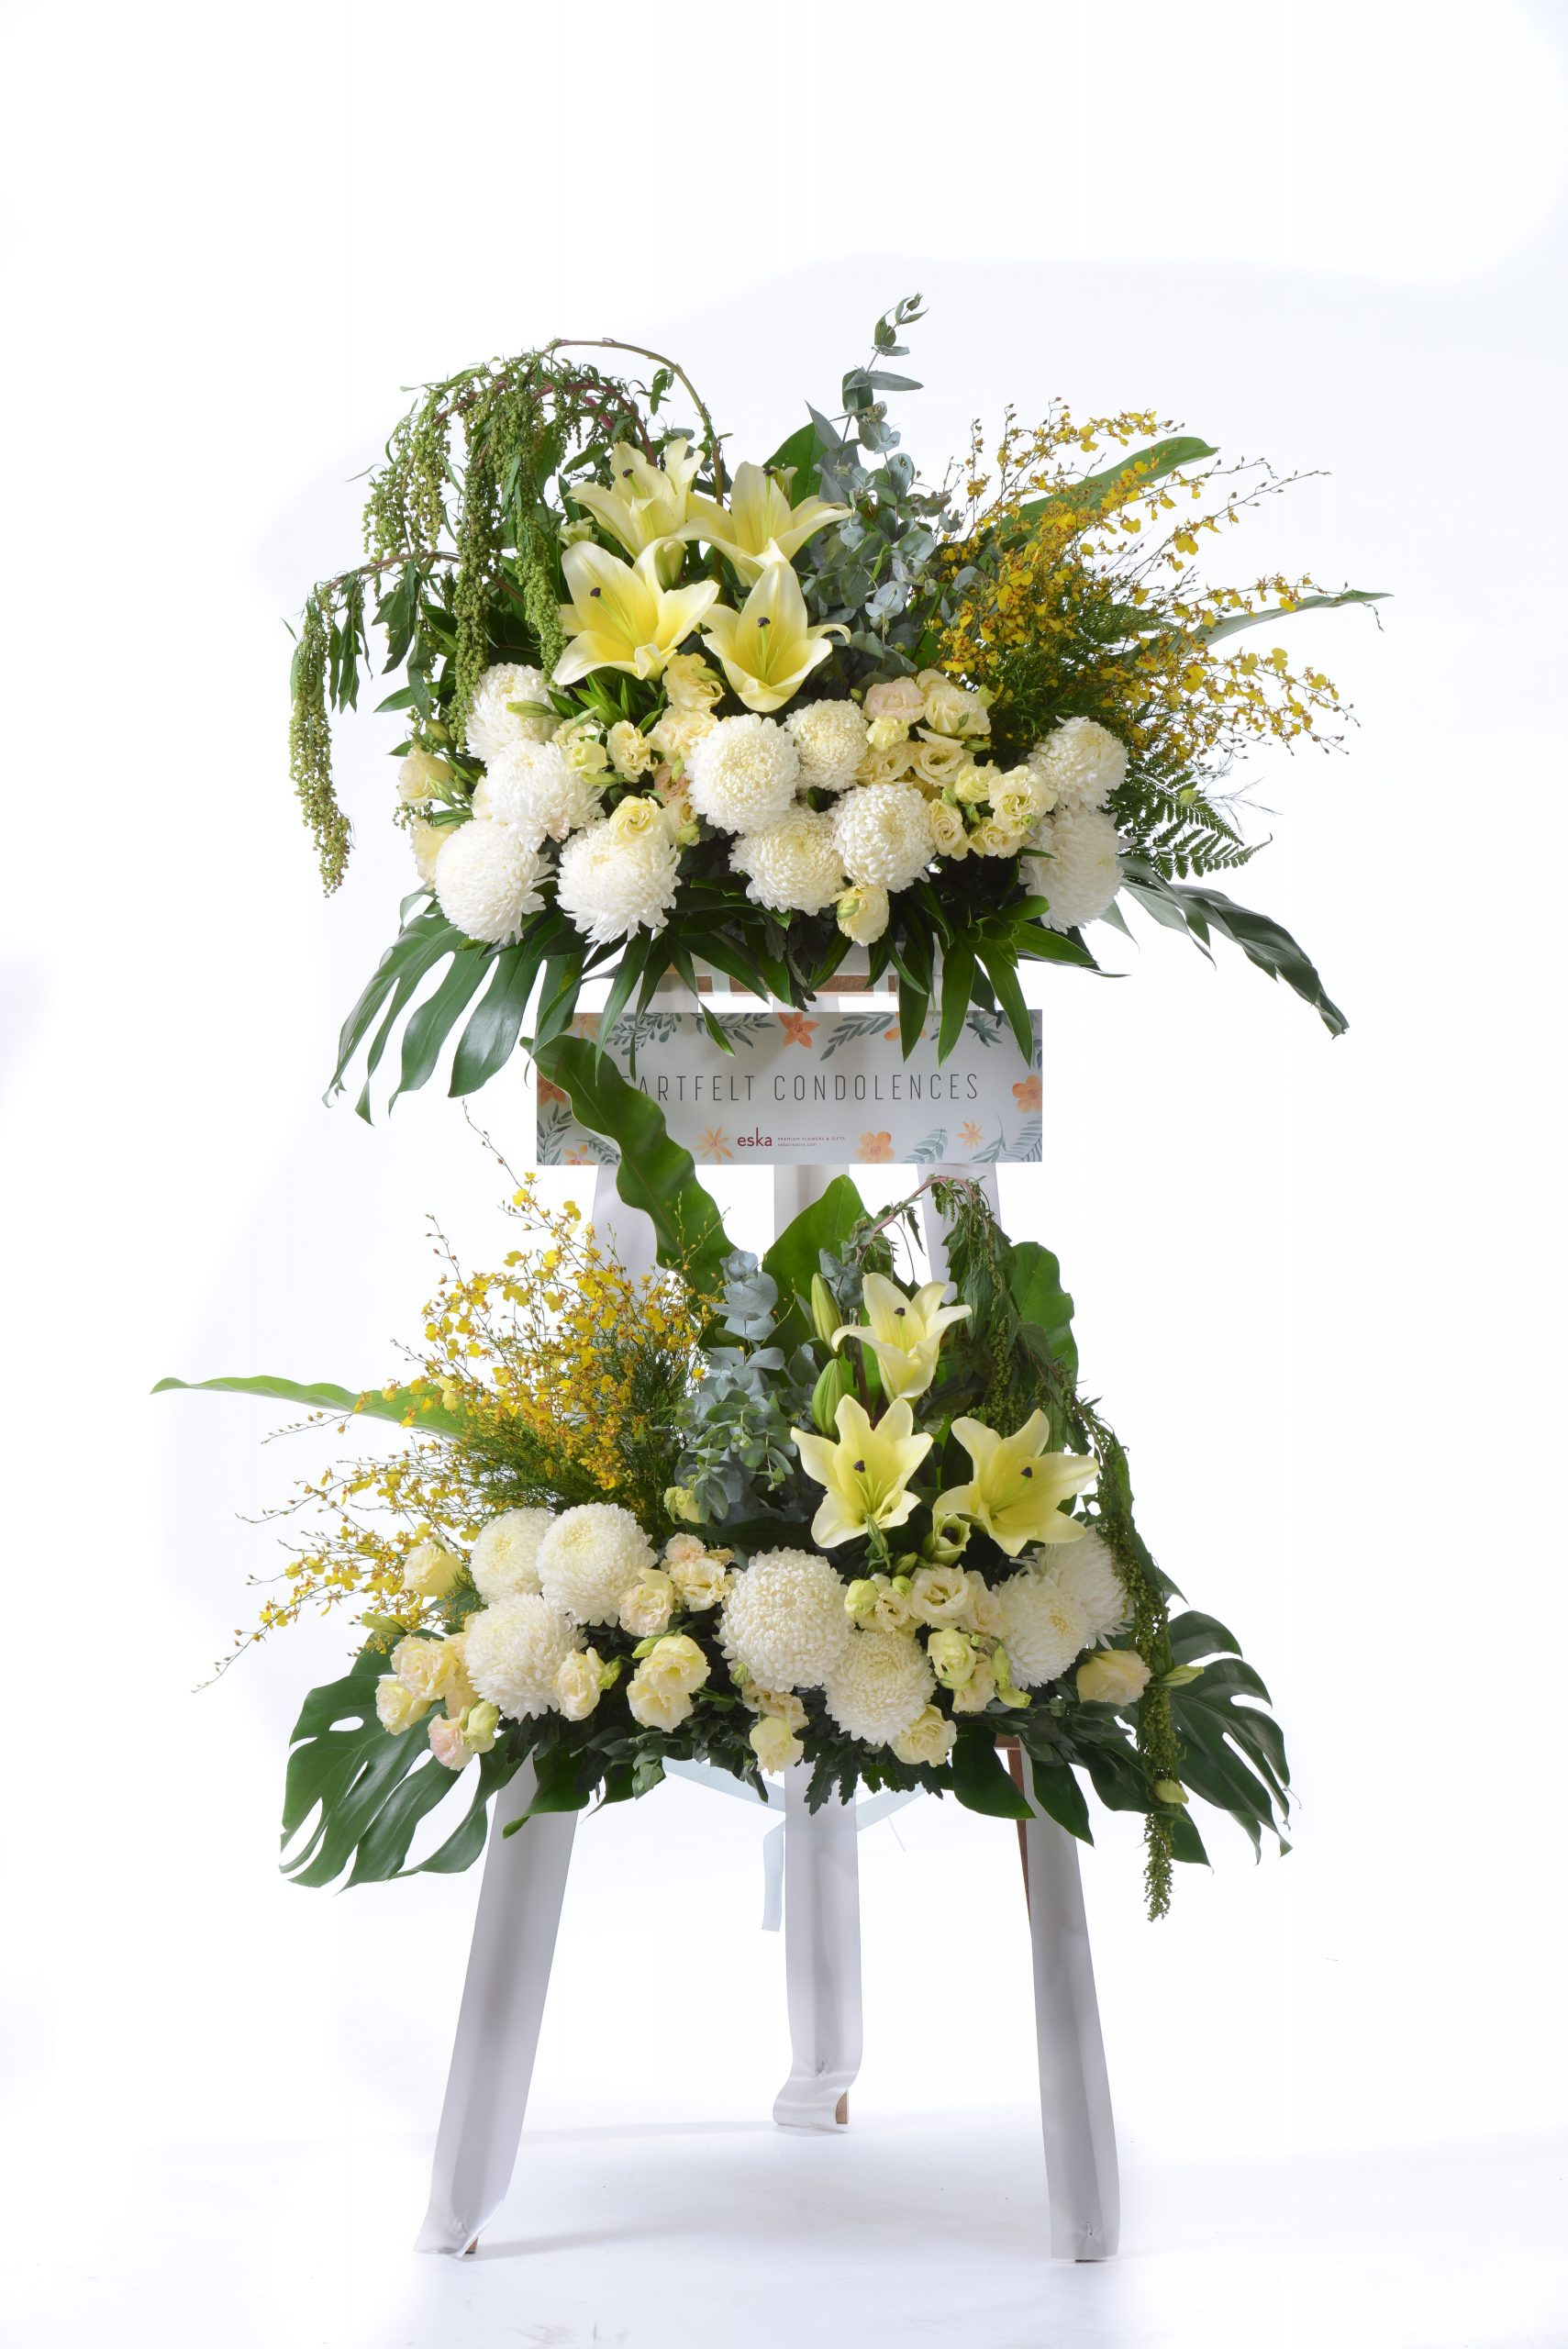 White Moments Funeral Flower Stand | Condolence Flower | Eska Creative Gifting